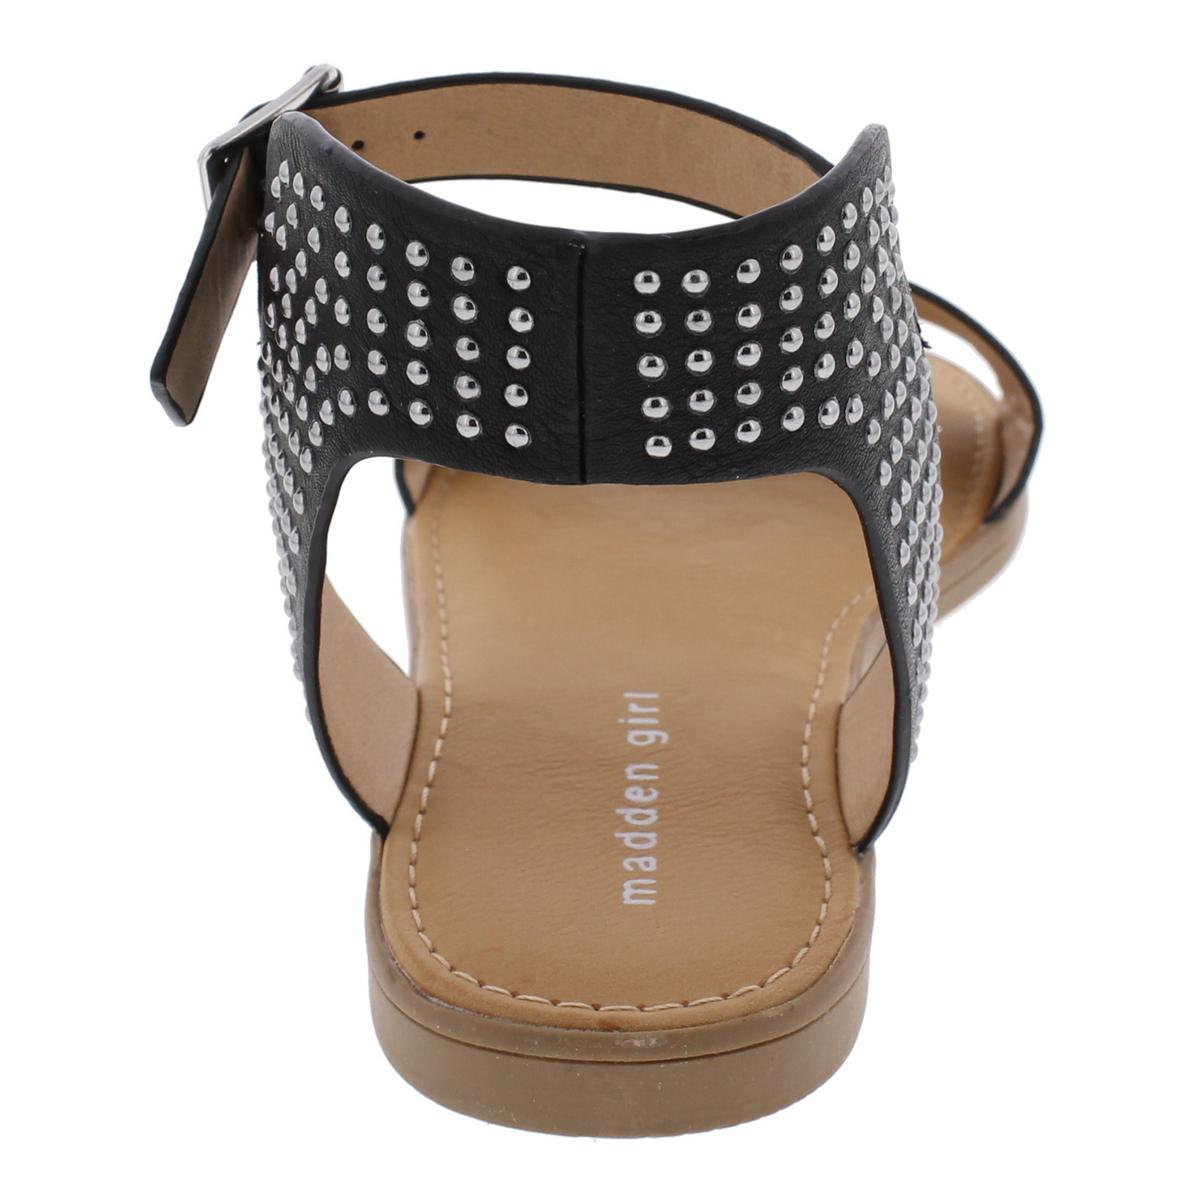 Madden-Girl-by-Steve-Madden-Womens-Drama-Ankle-Flat-Sandals-Shoes-BHFO-9428 thumbnail 6